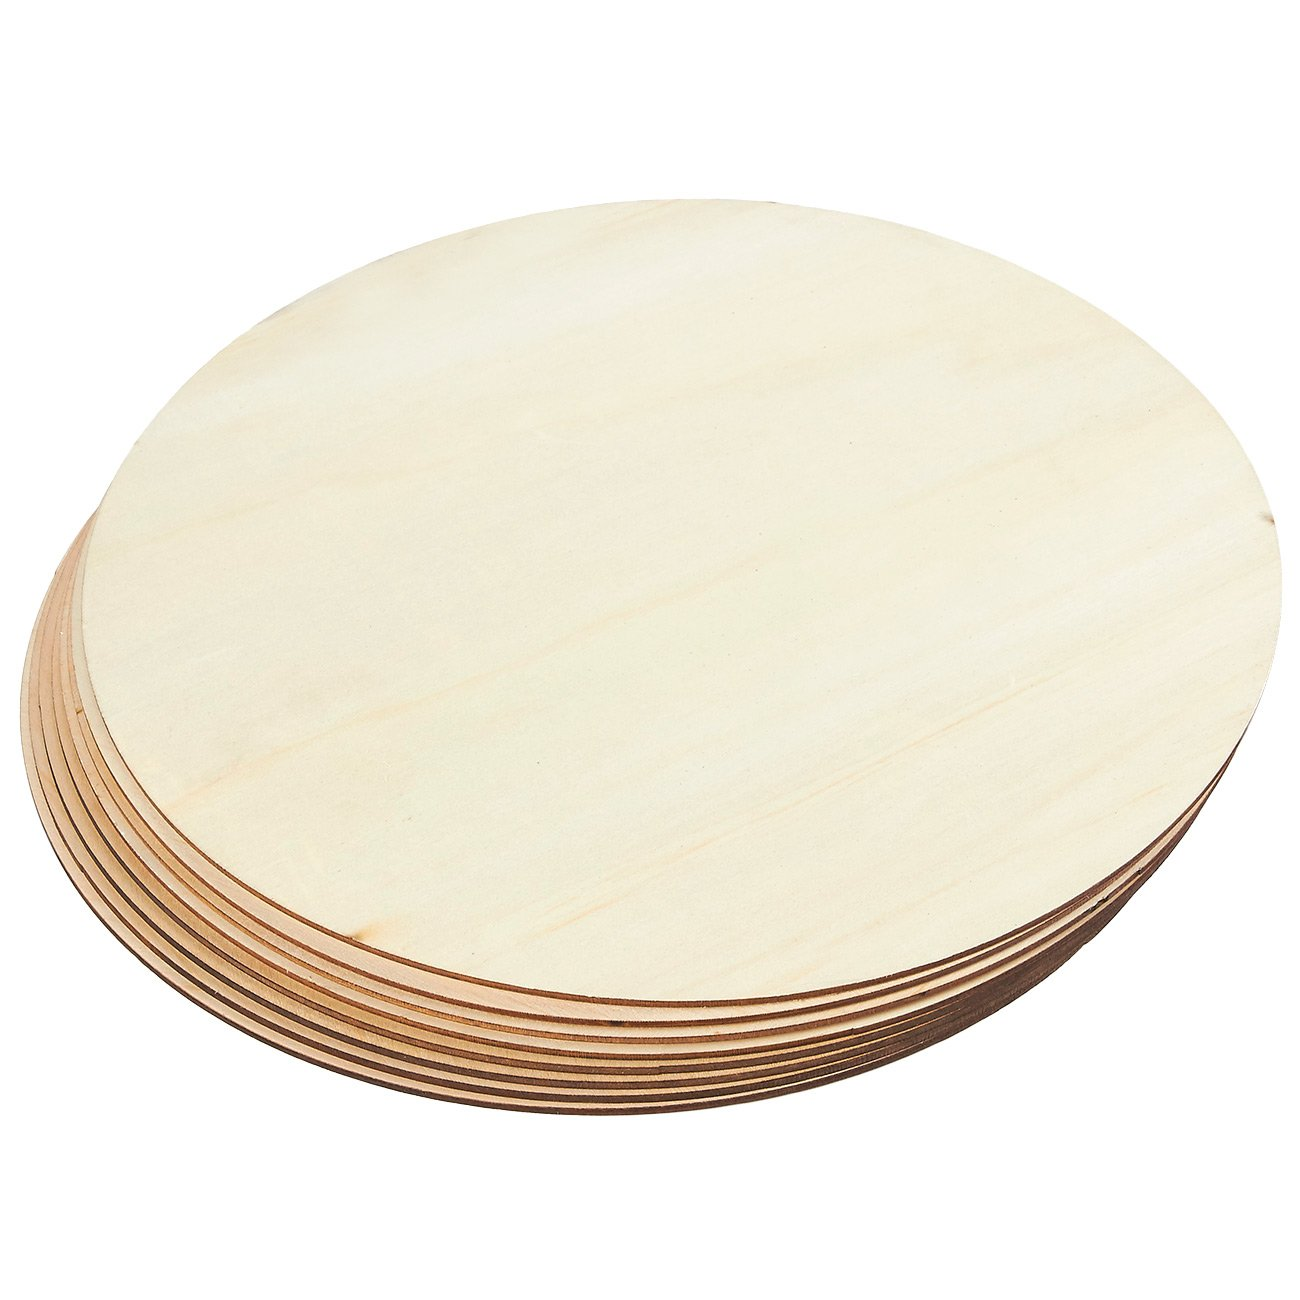 Unfinished Wood Circle - 8-Pack Round Natural Rustic Wooden Cutout for Home Decoration, DIY Craft Supplies, 11.75-inch Diameter, 0.1 inch Thick